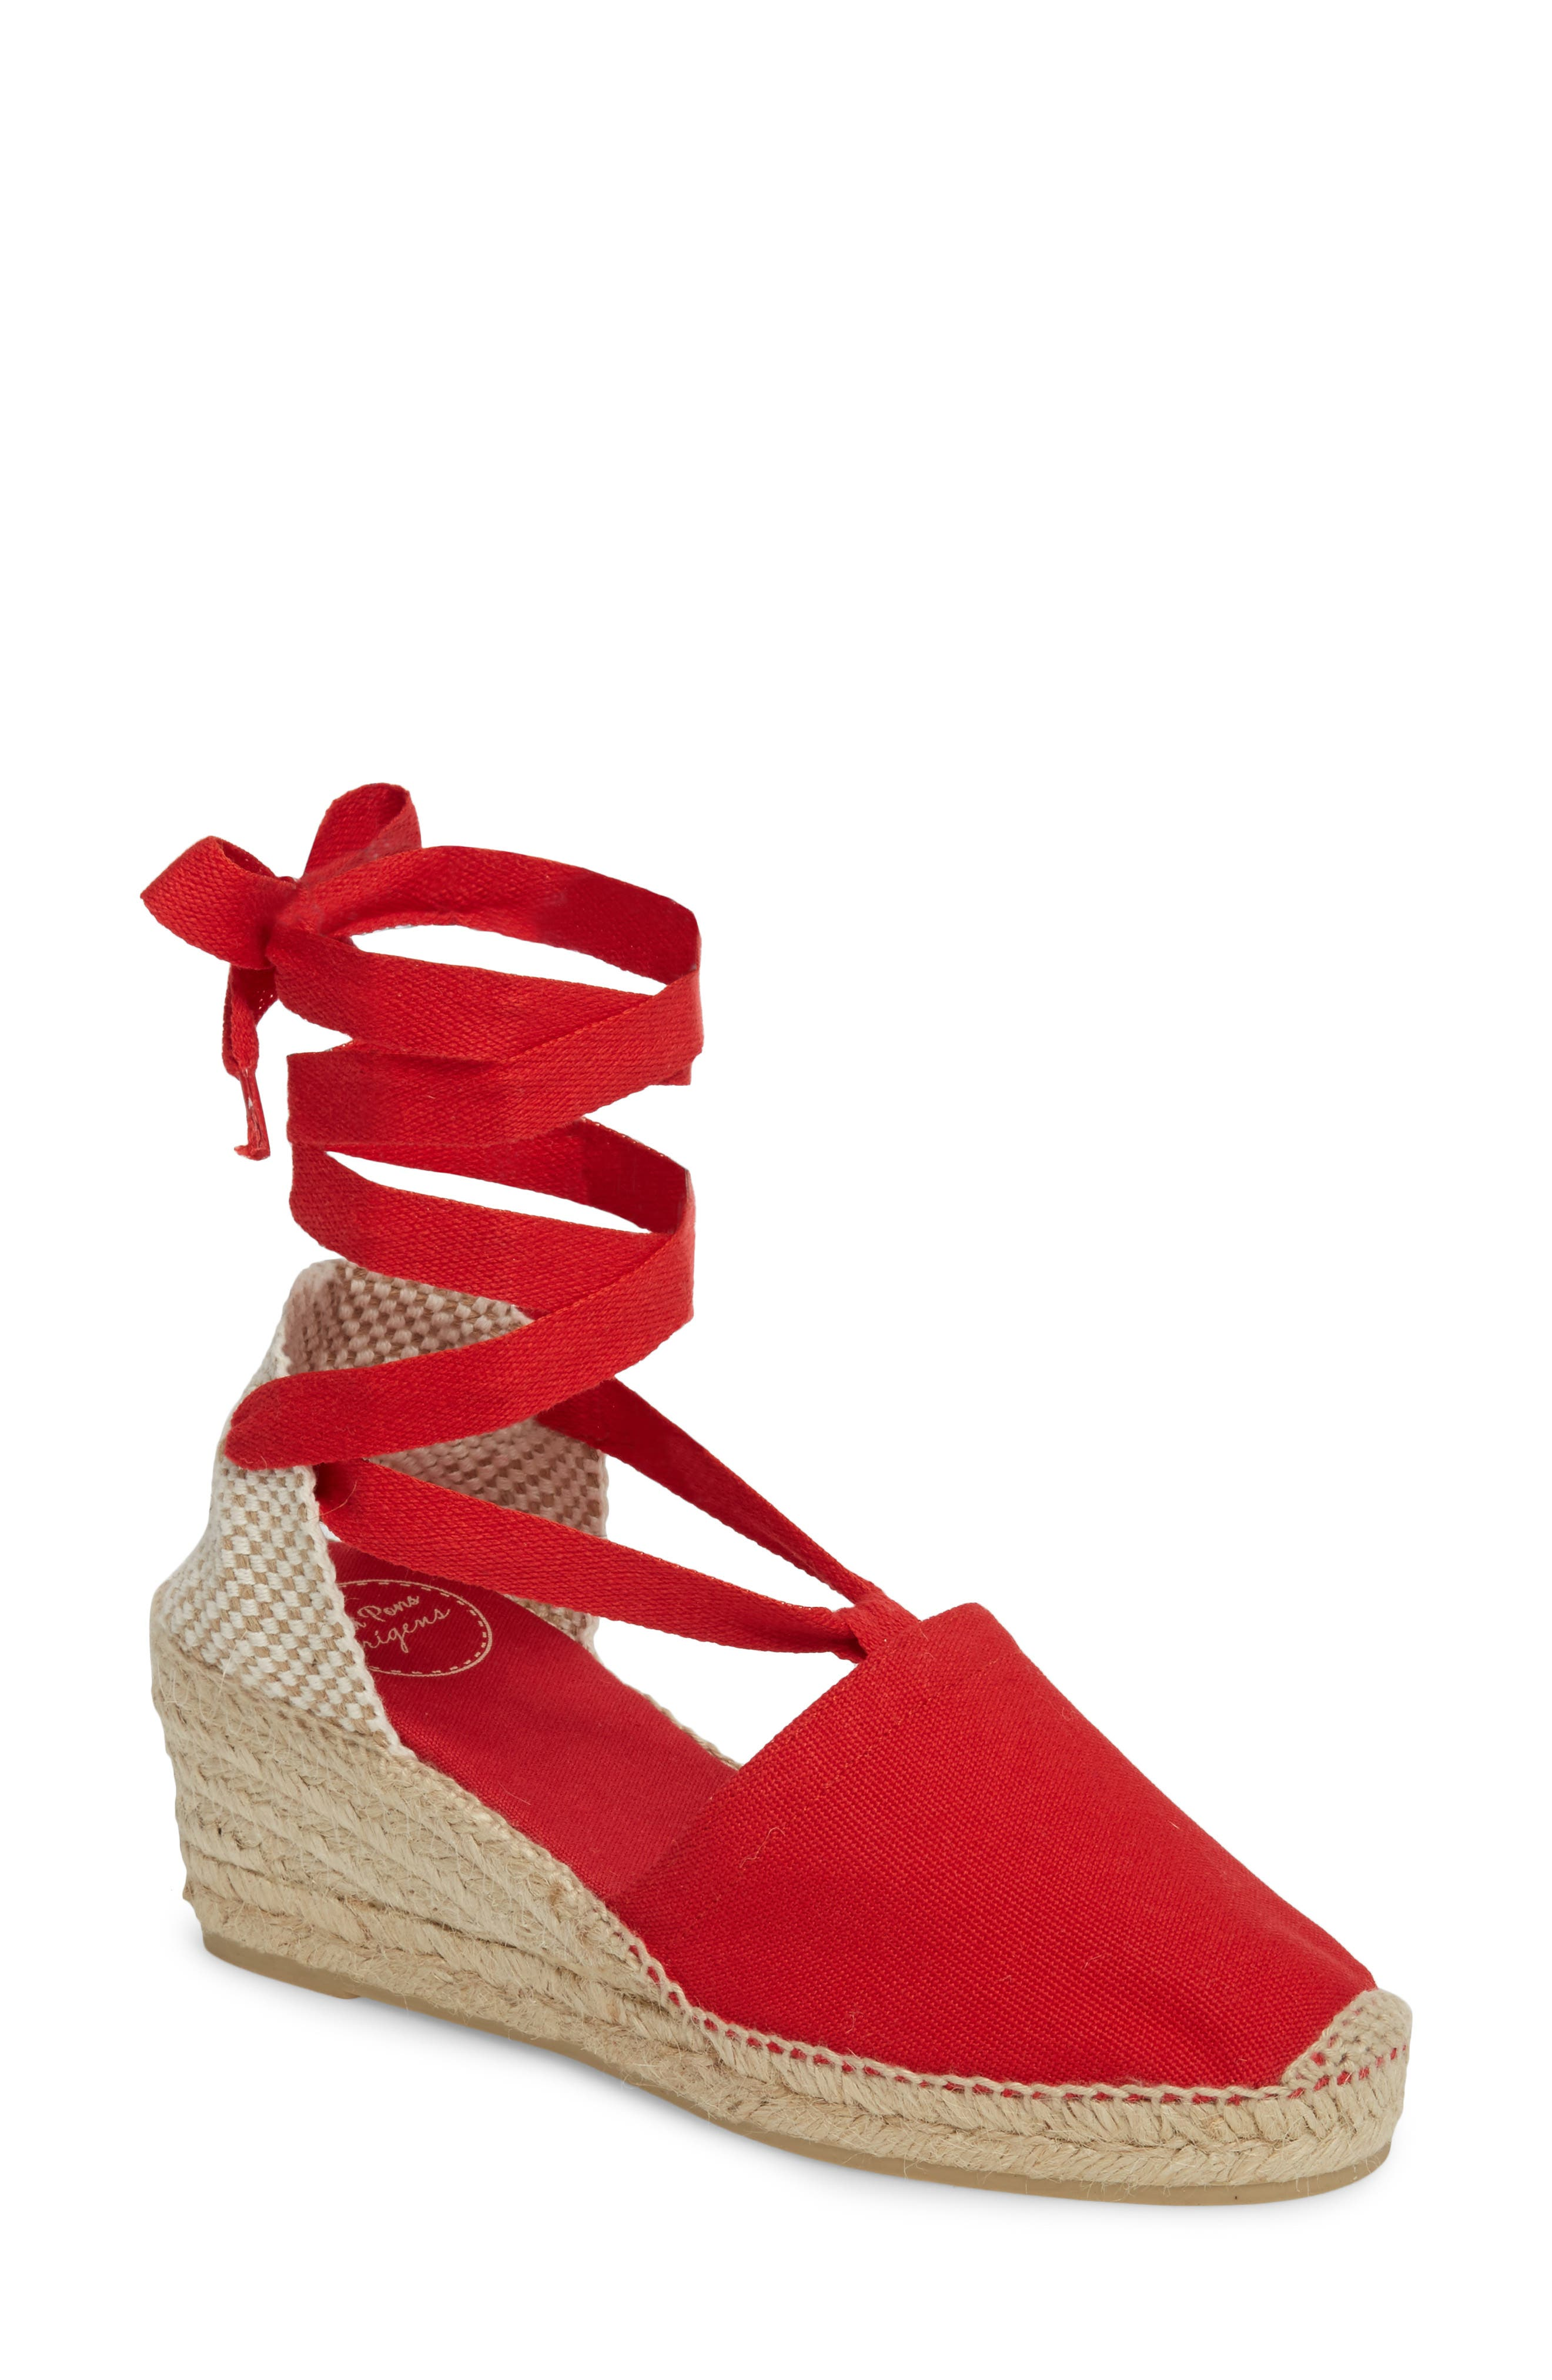 Valencia Wraparound Espadrille Wedge,                         Main,                         color, Red Fabric